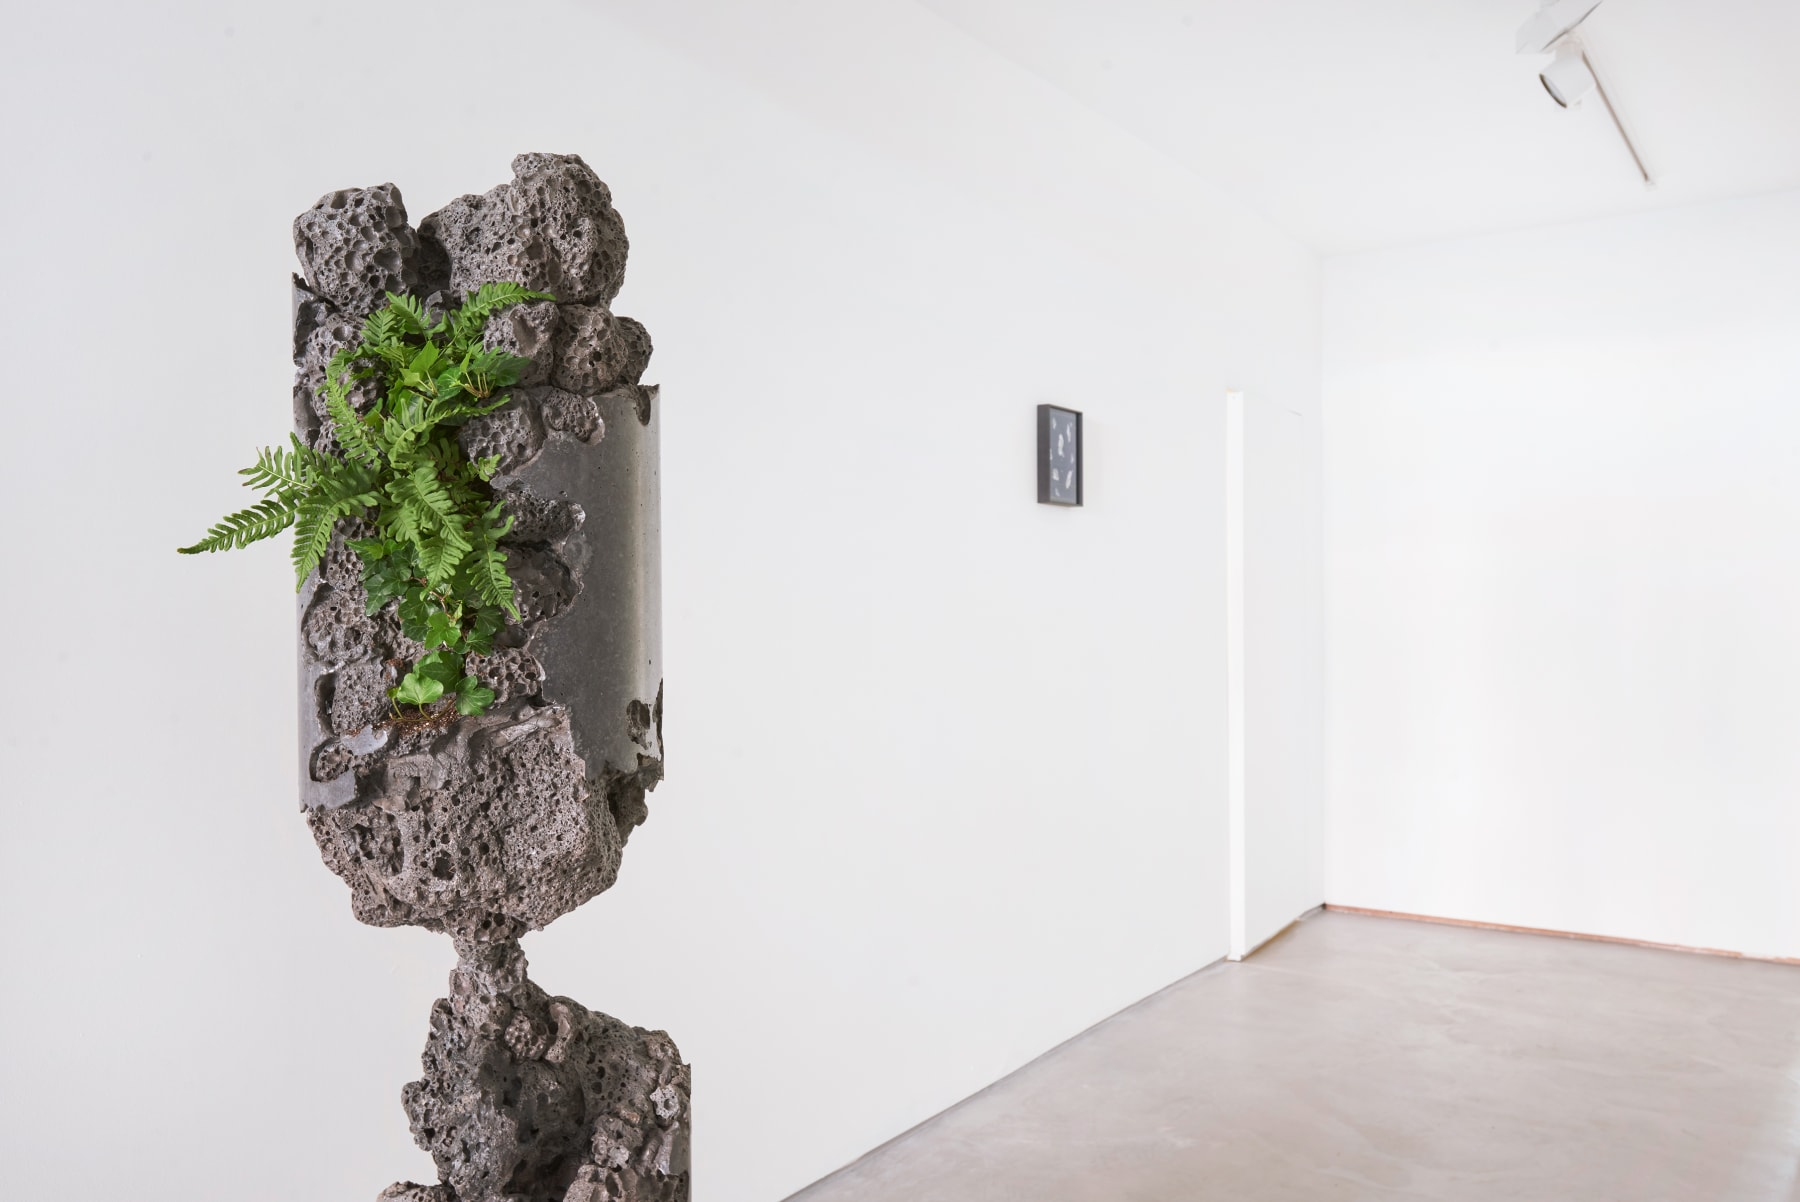 From Nature, Installation view 2021, Image by Scarlet Page